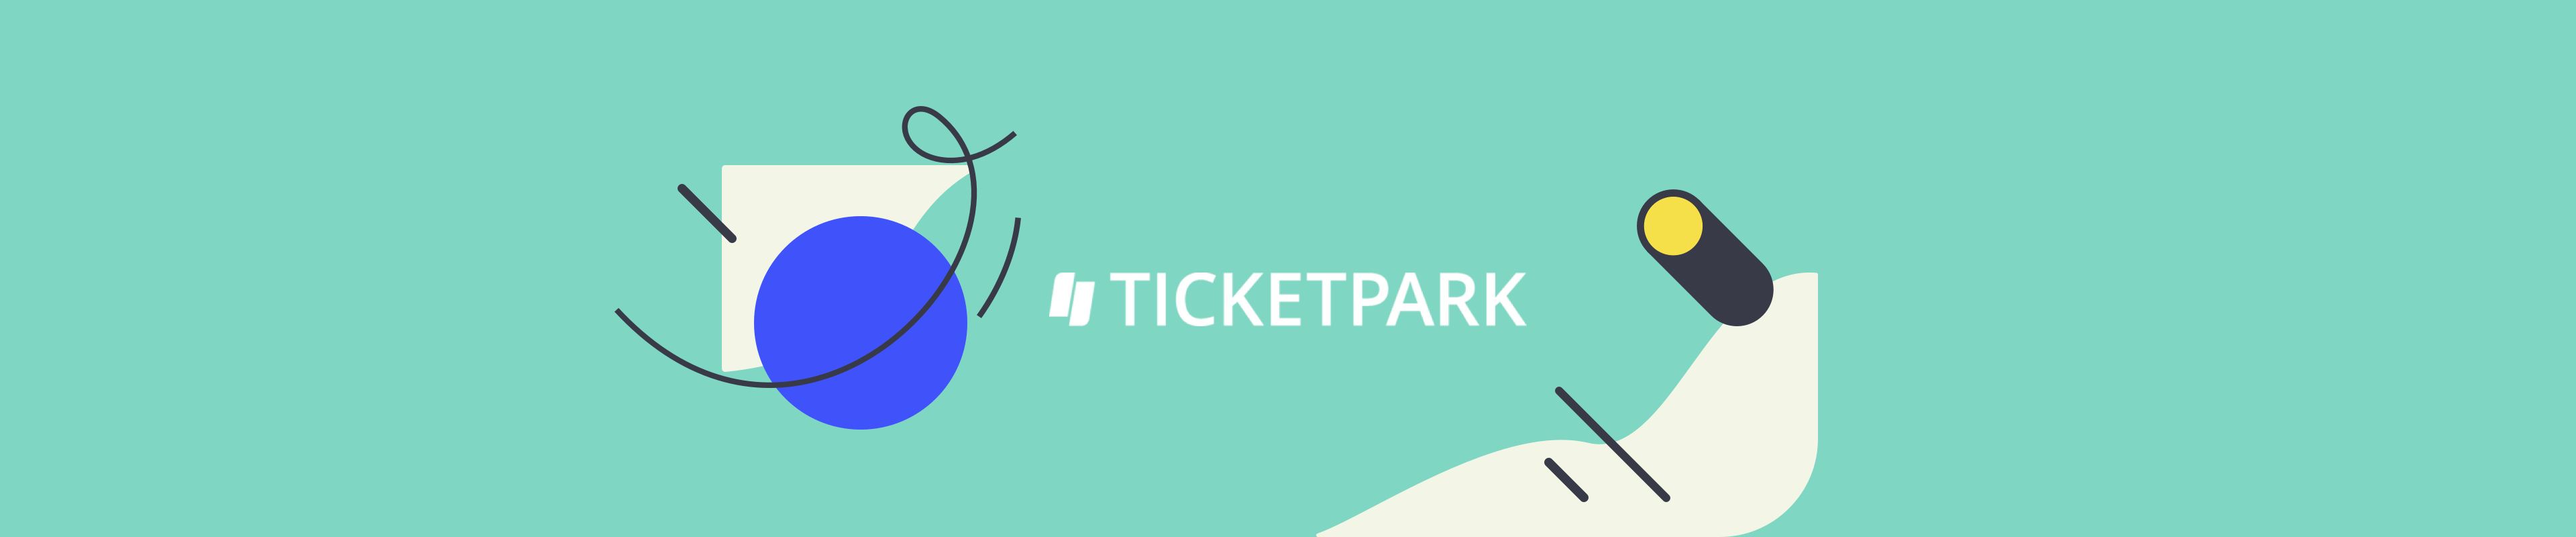 Case study of Ticketpark